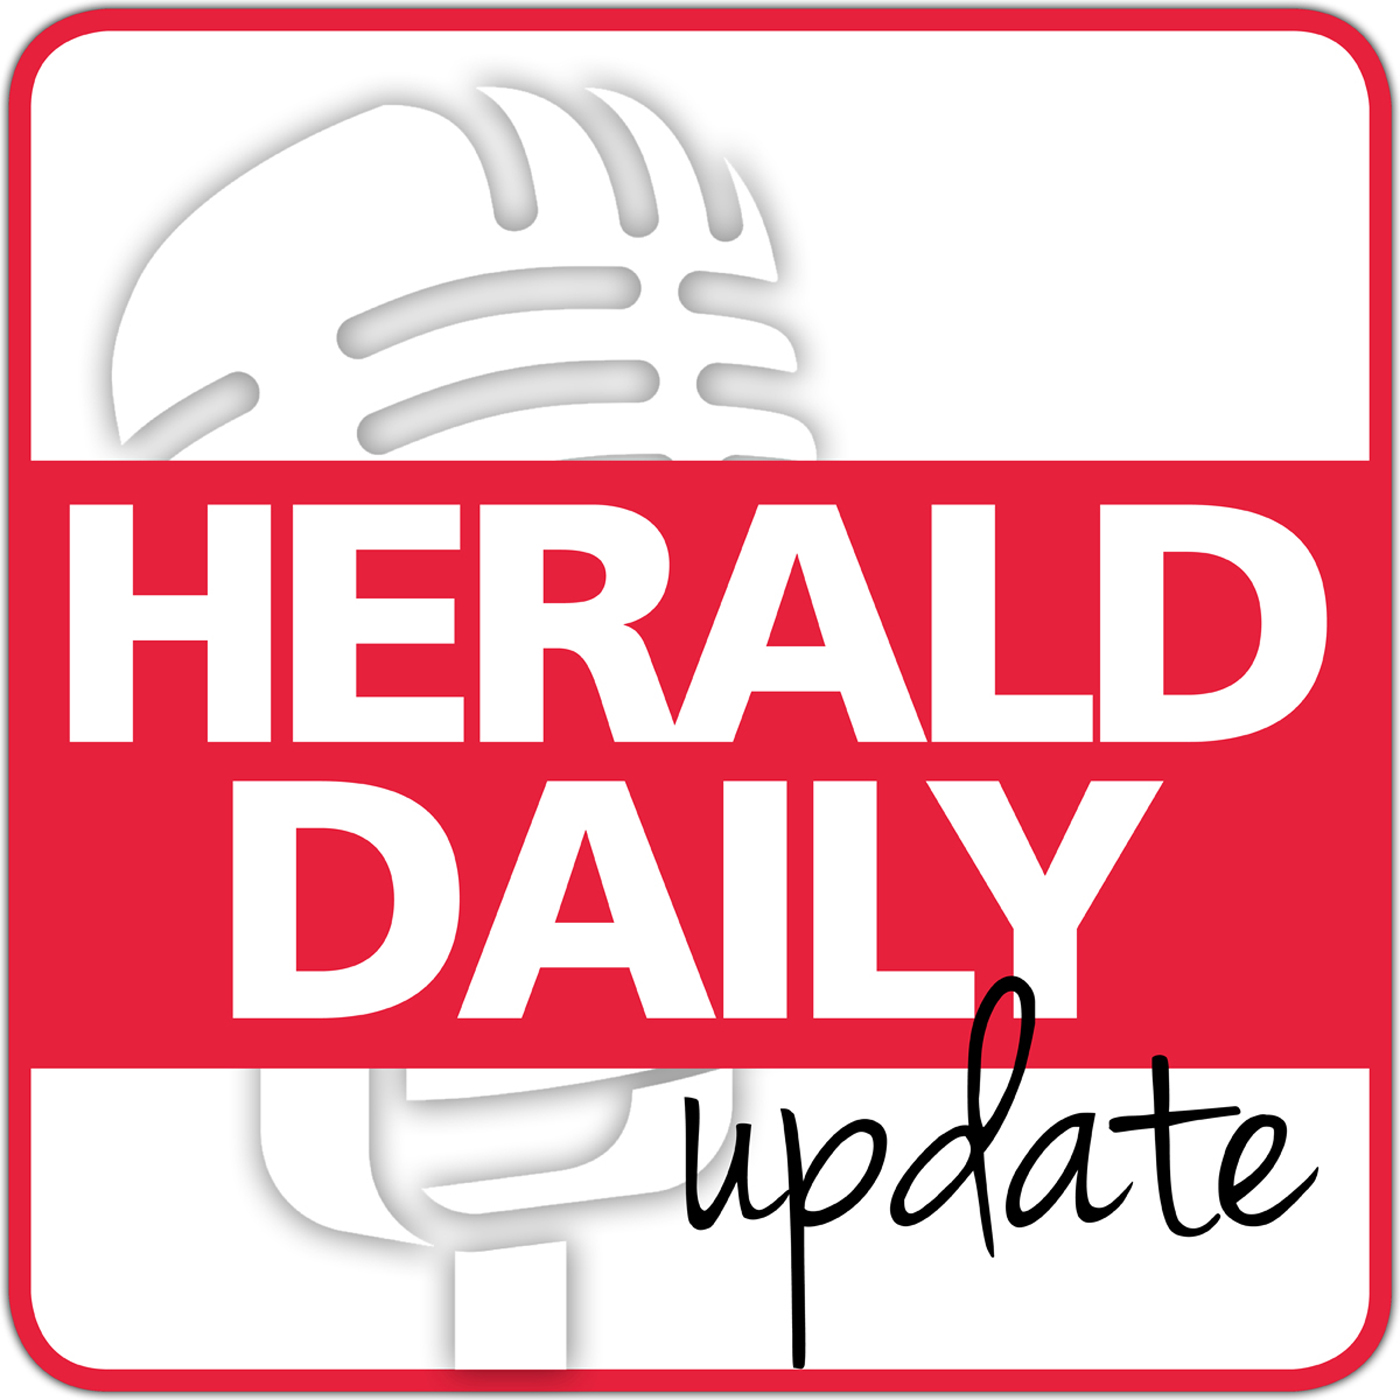 Artwork for Herald Daily Update - Friday, July 19, 2019